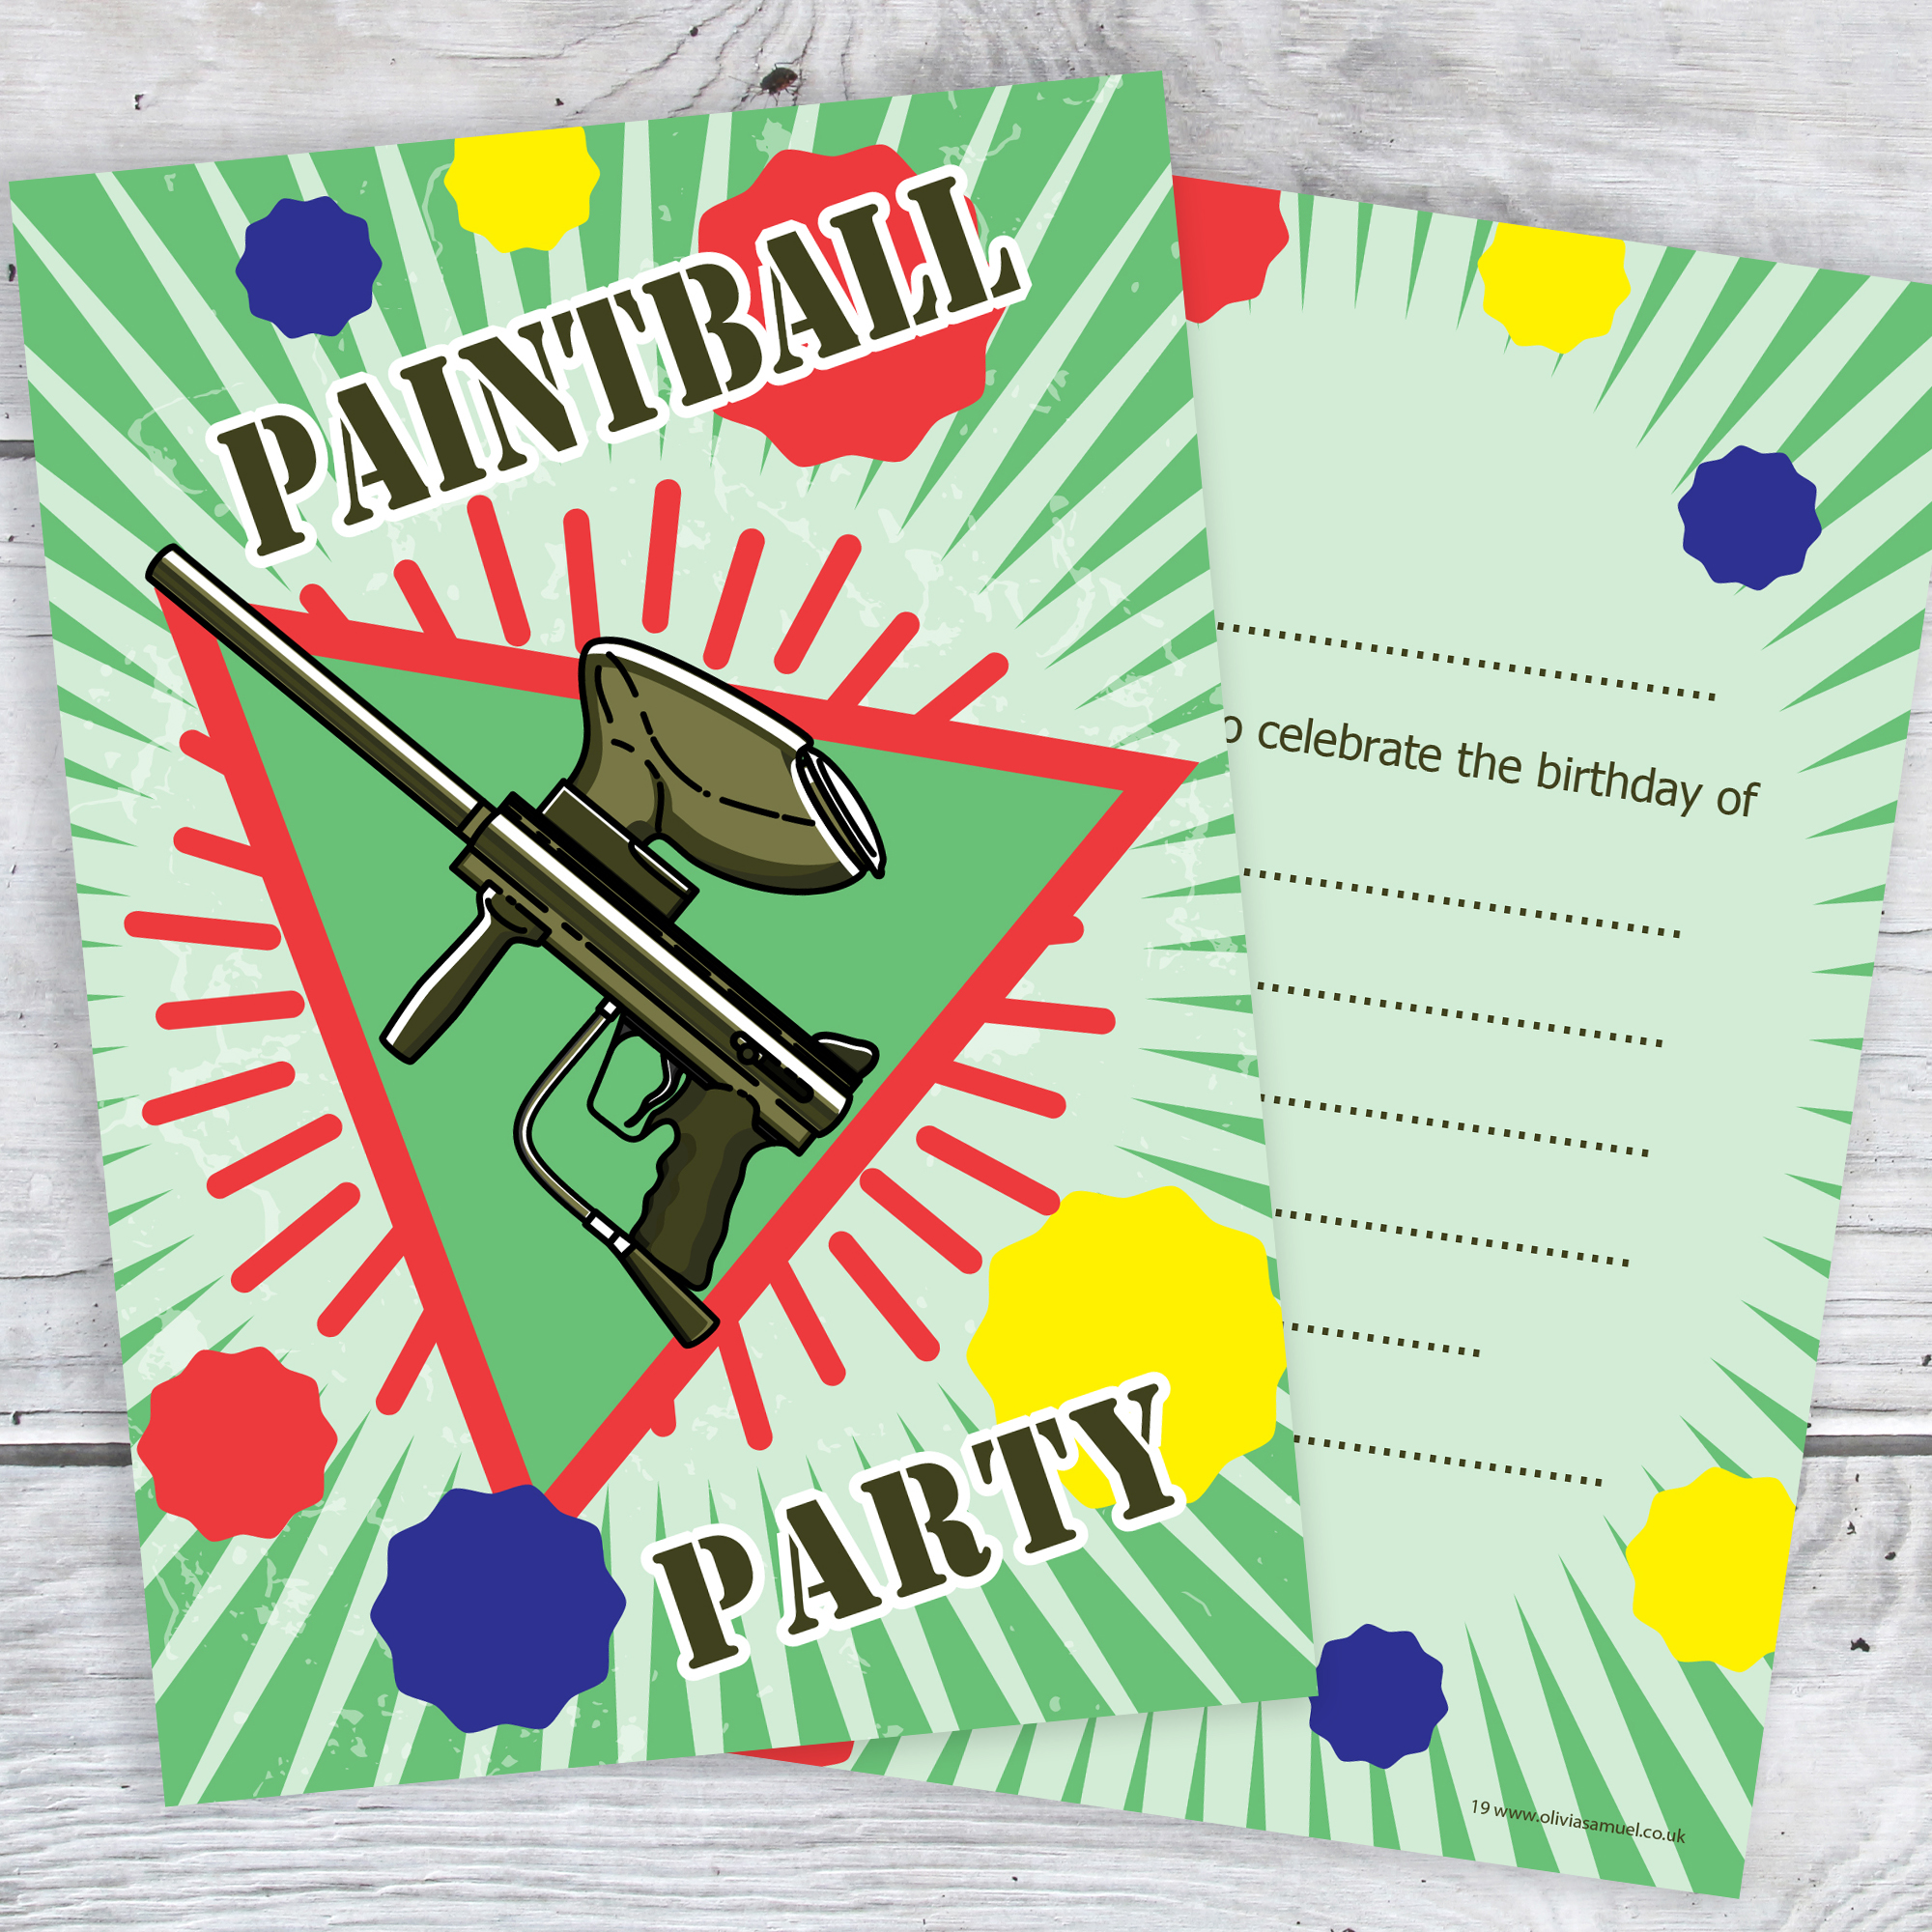 Paintball Party Invitations Birthday Invites A6 Postcard Size With Envelopes Pack Of 10